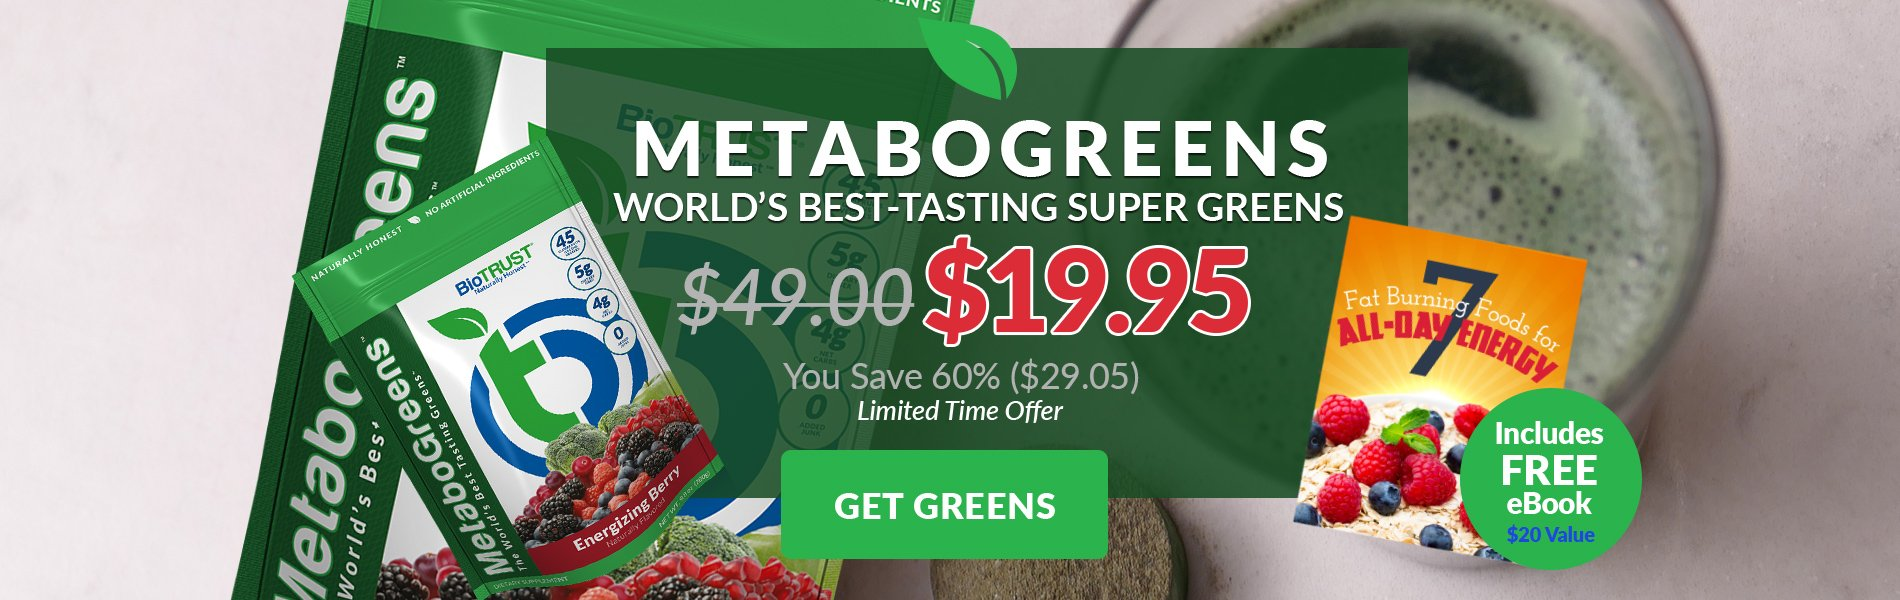 metabogreens world's best-tasting super greens $19.95